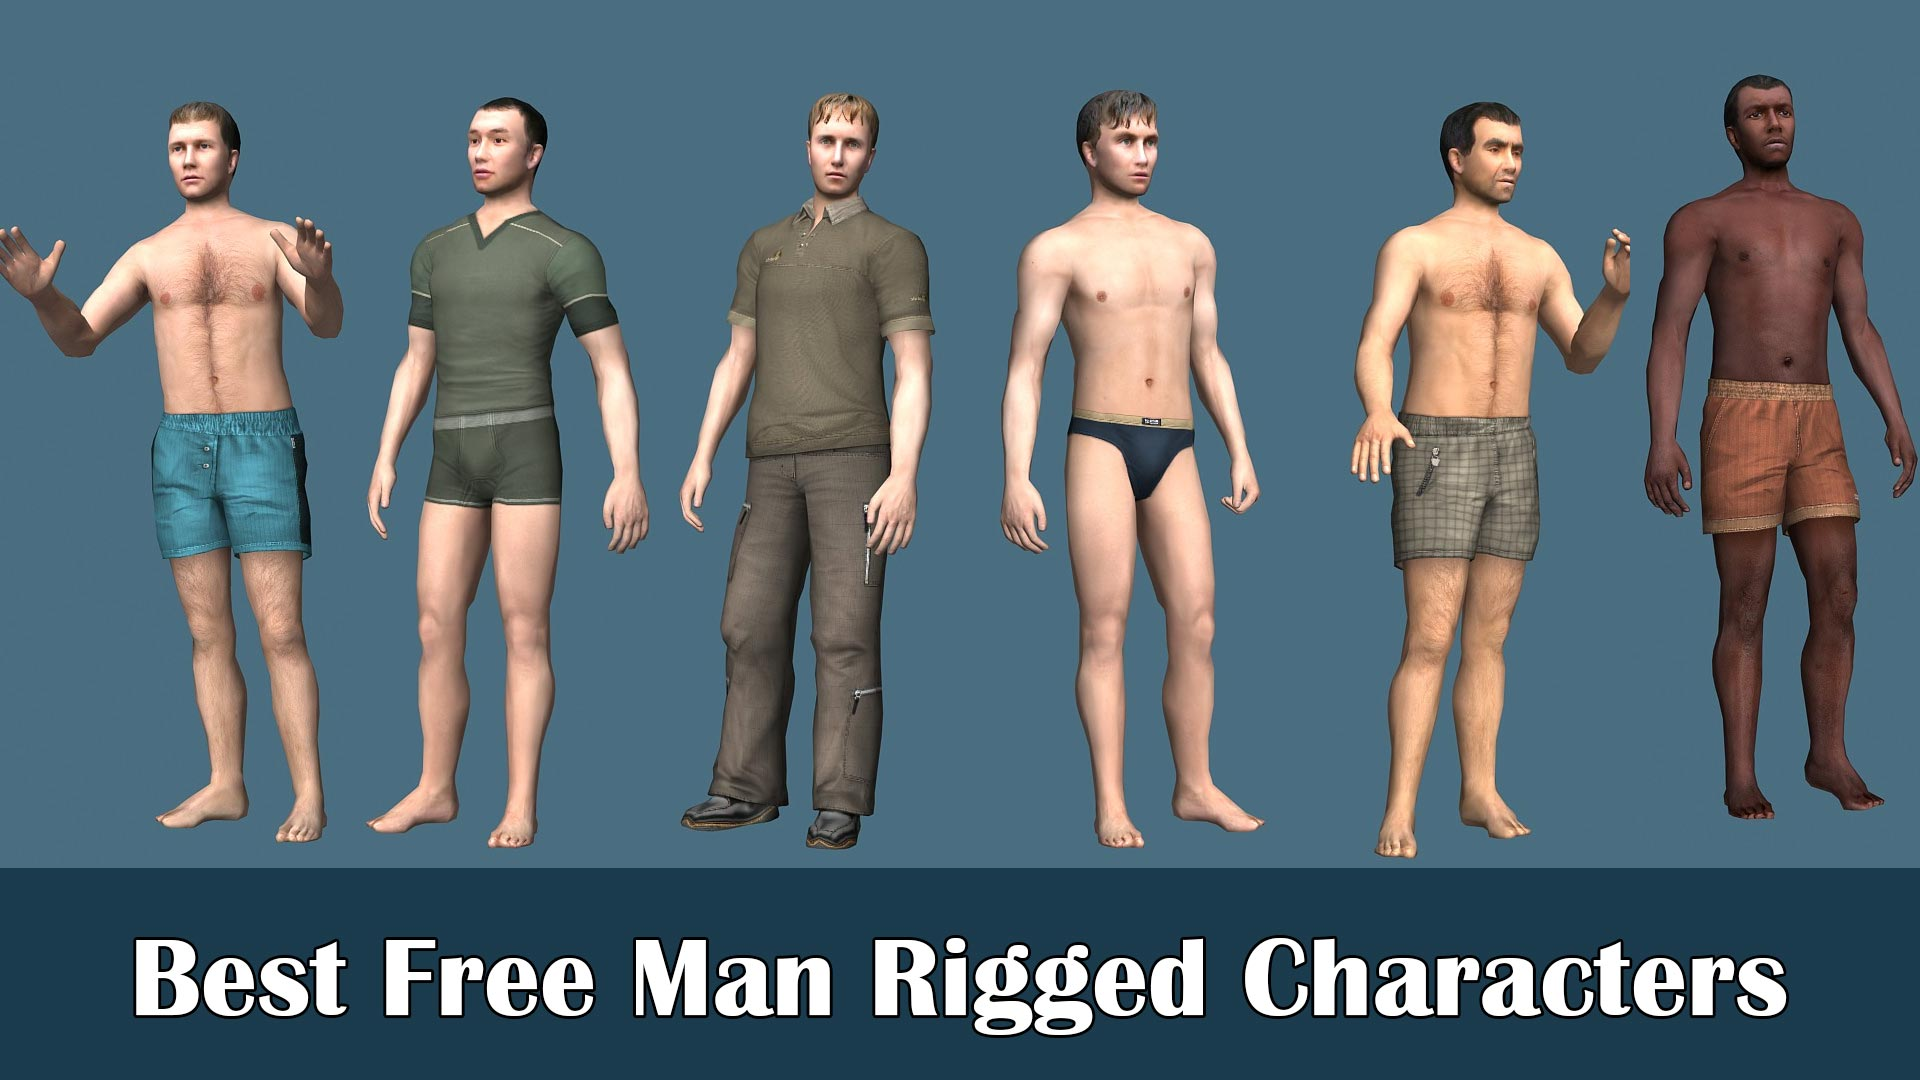 Best Male or Man Rigged Characters-Free Download | All